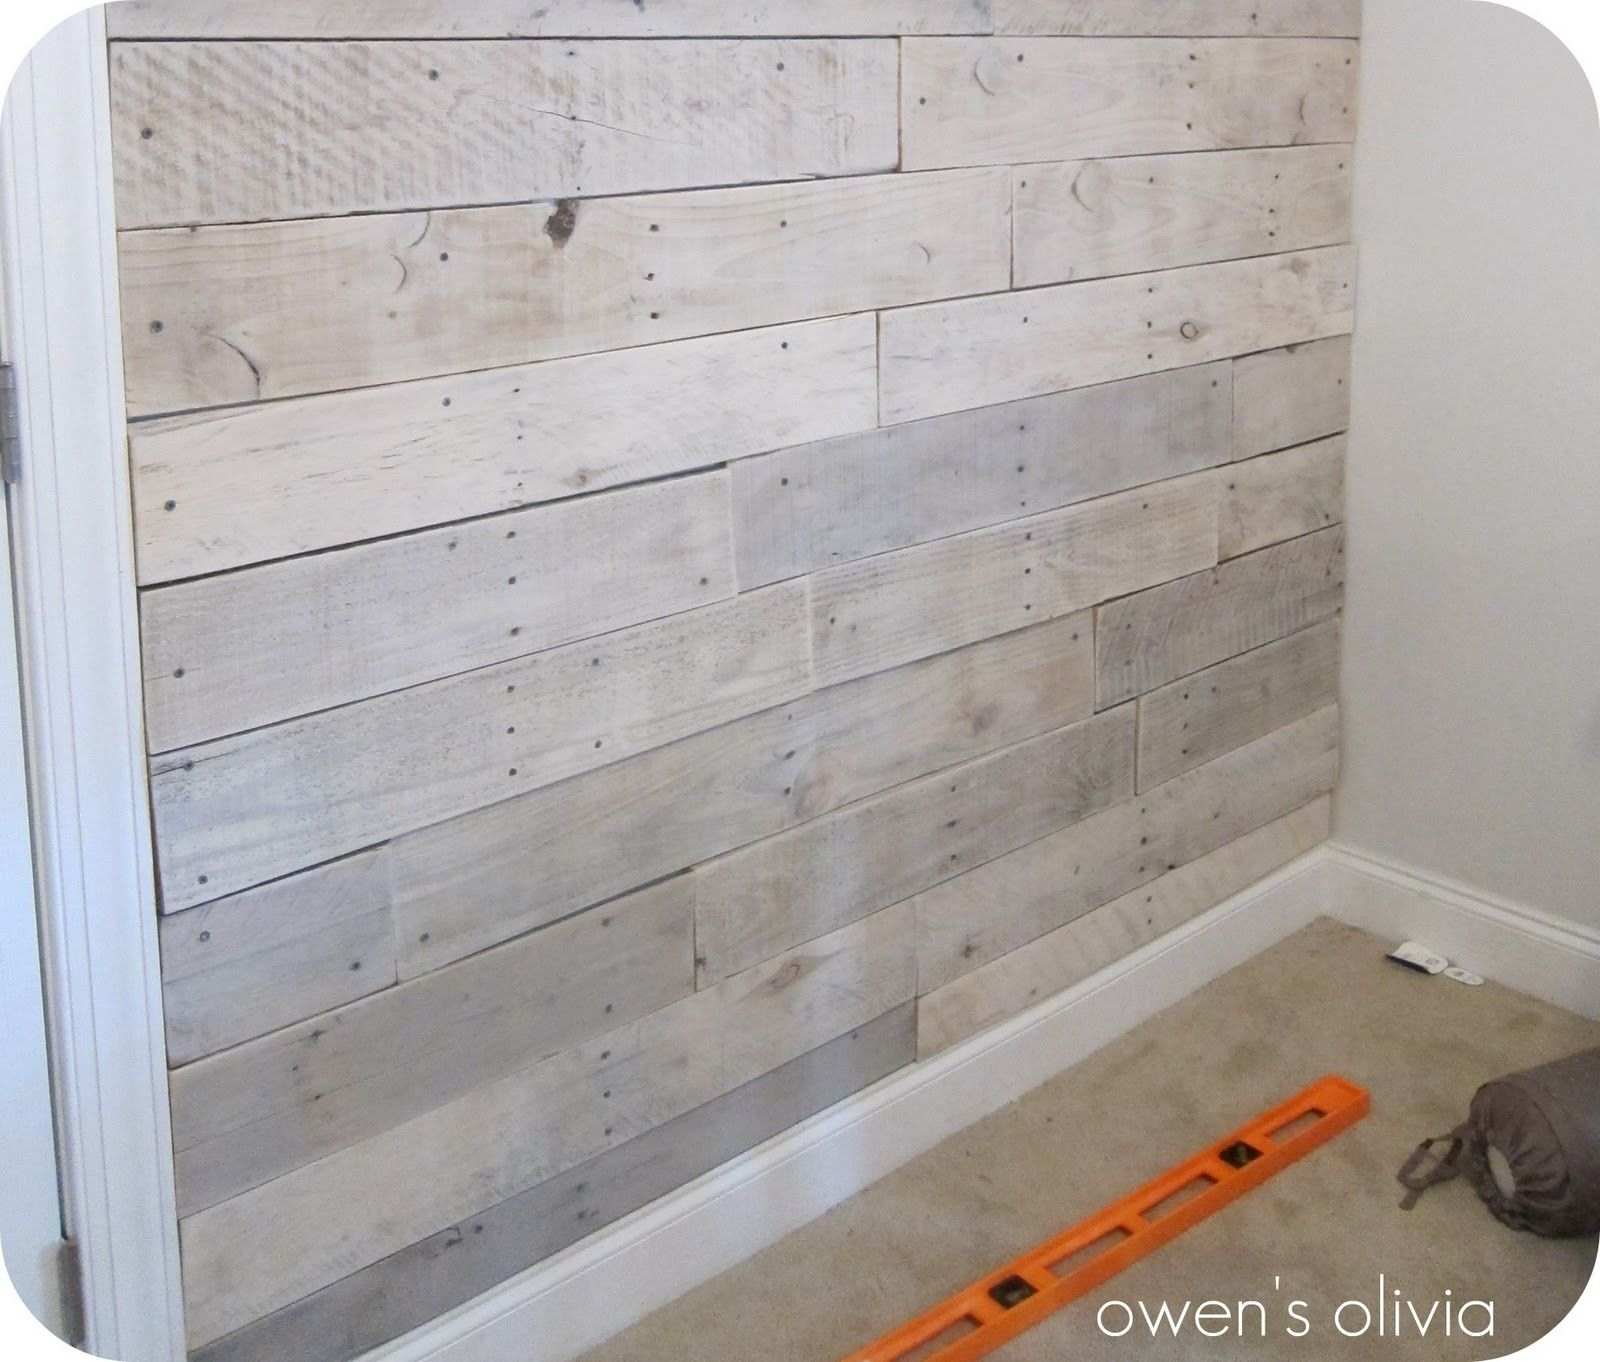 White Washed Wood Wall Made From Cedar Fence Boards: How To Whitewash Wood Paneling - Google Search